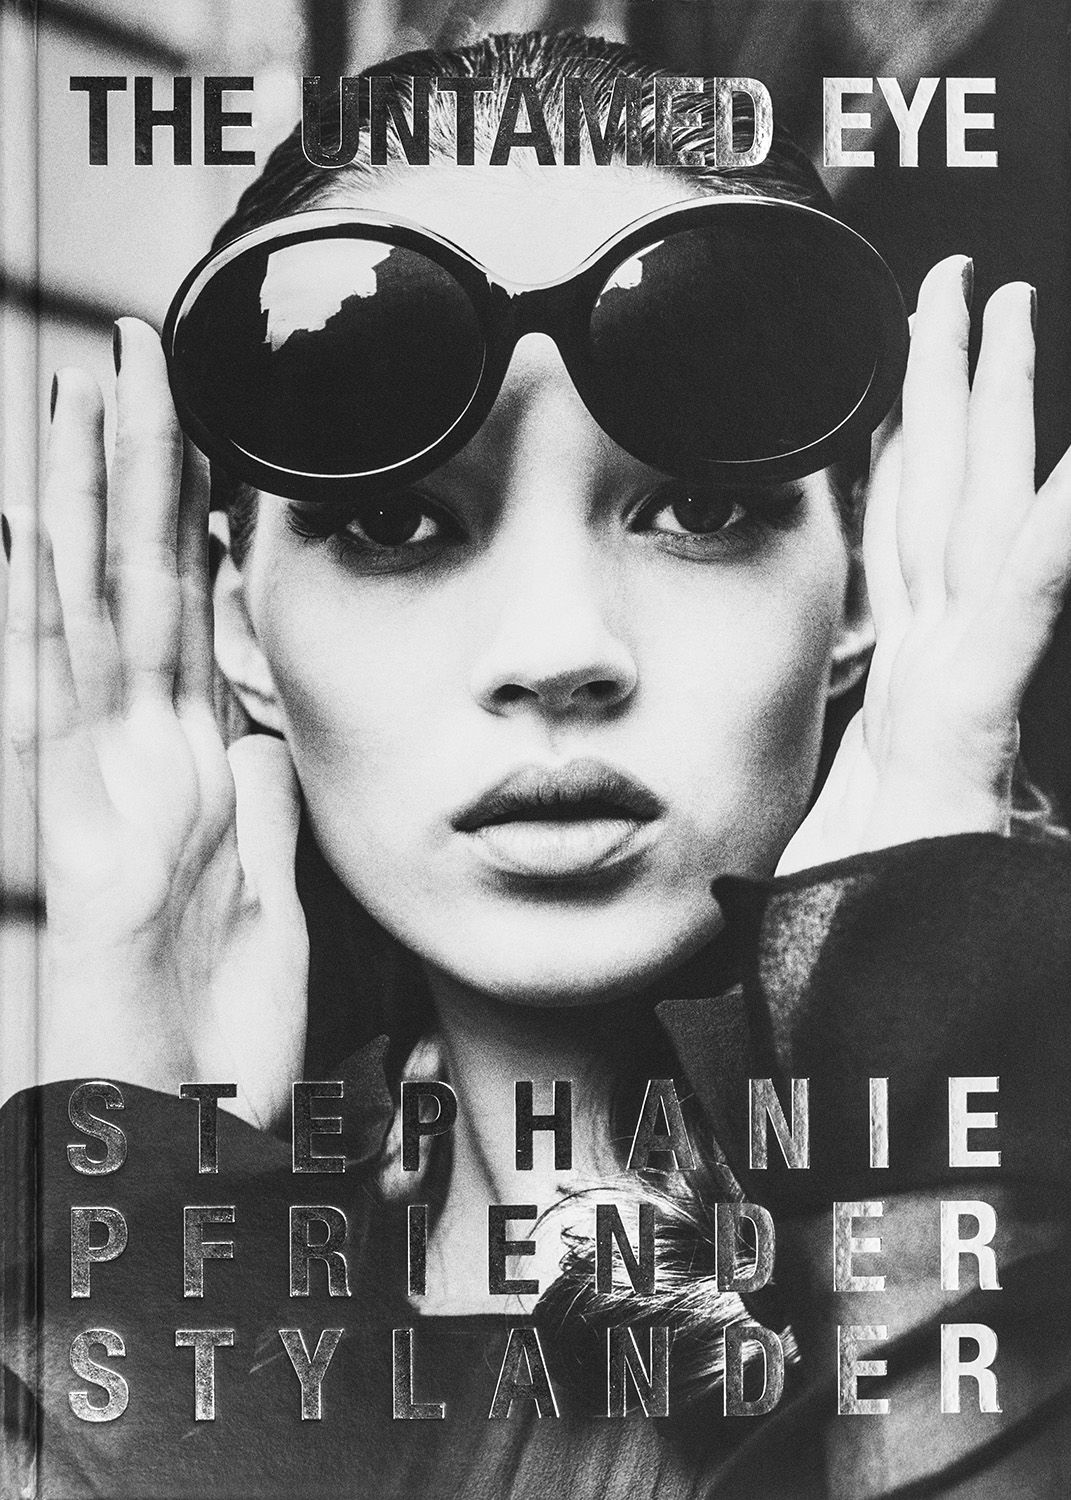 Stephanie Pfriender Stylander - Untamed Eye